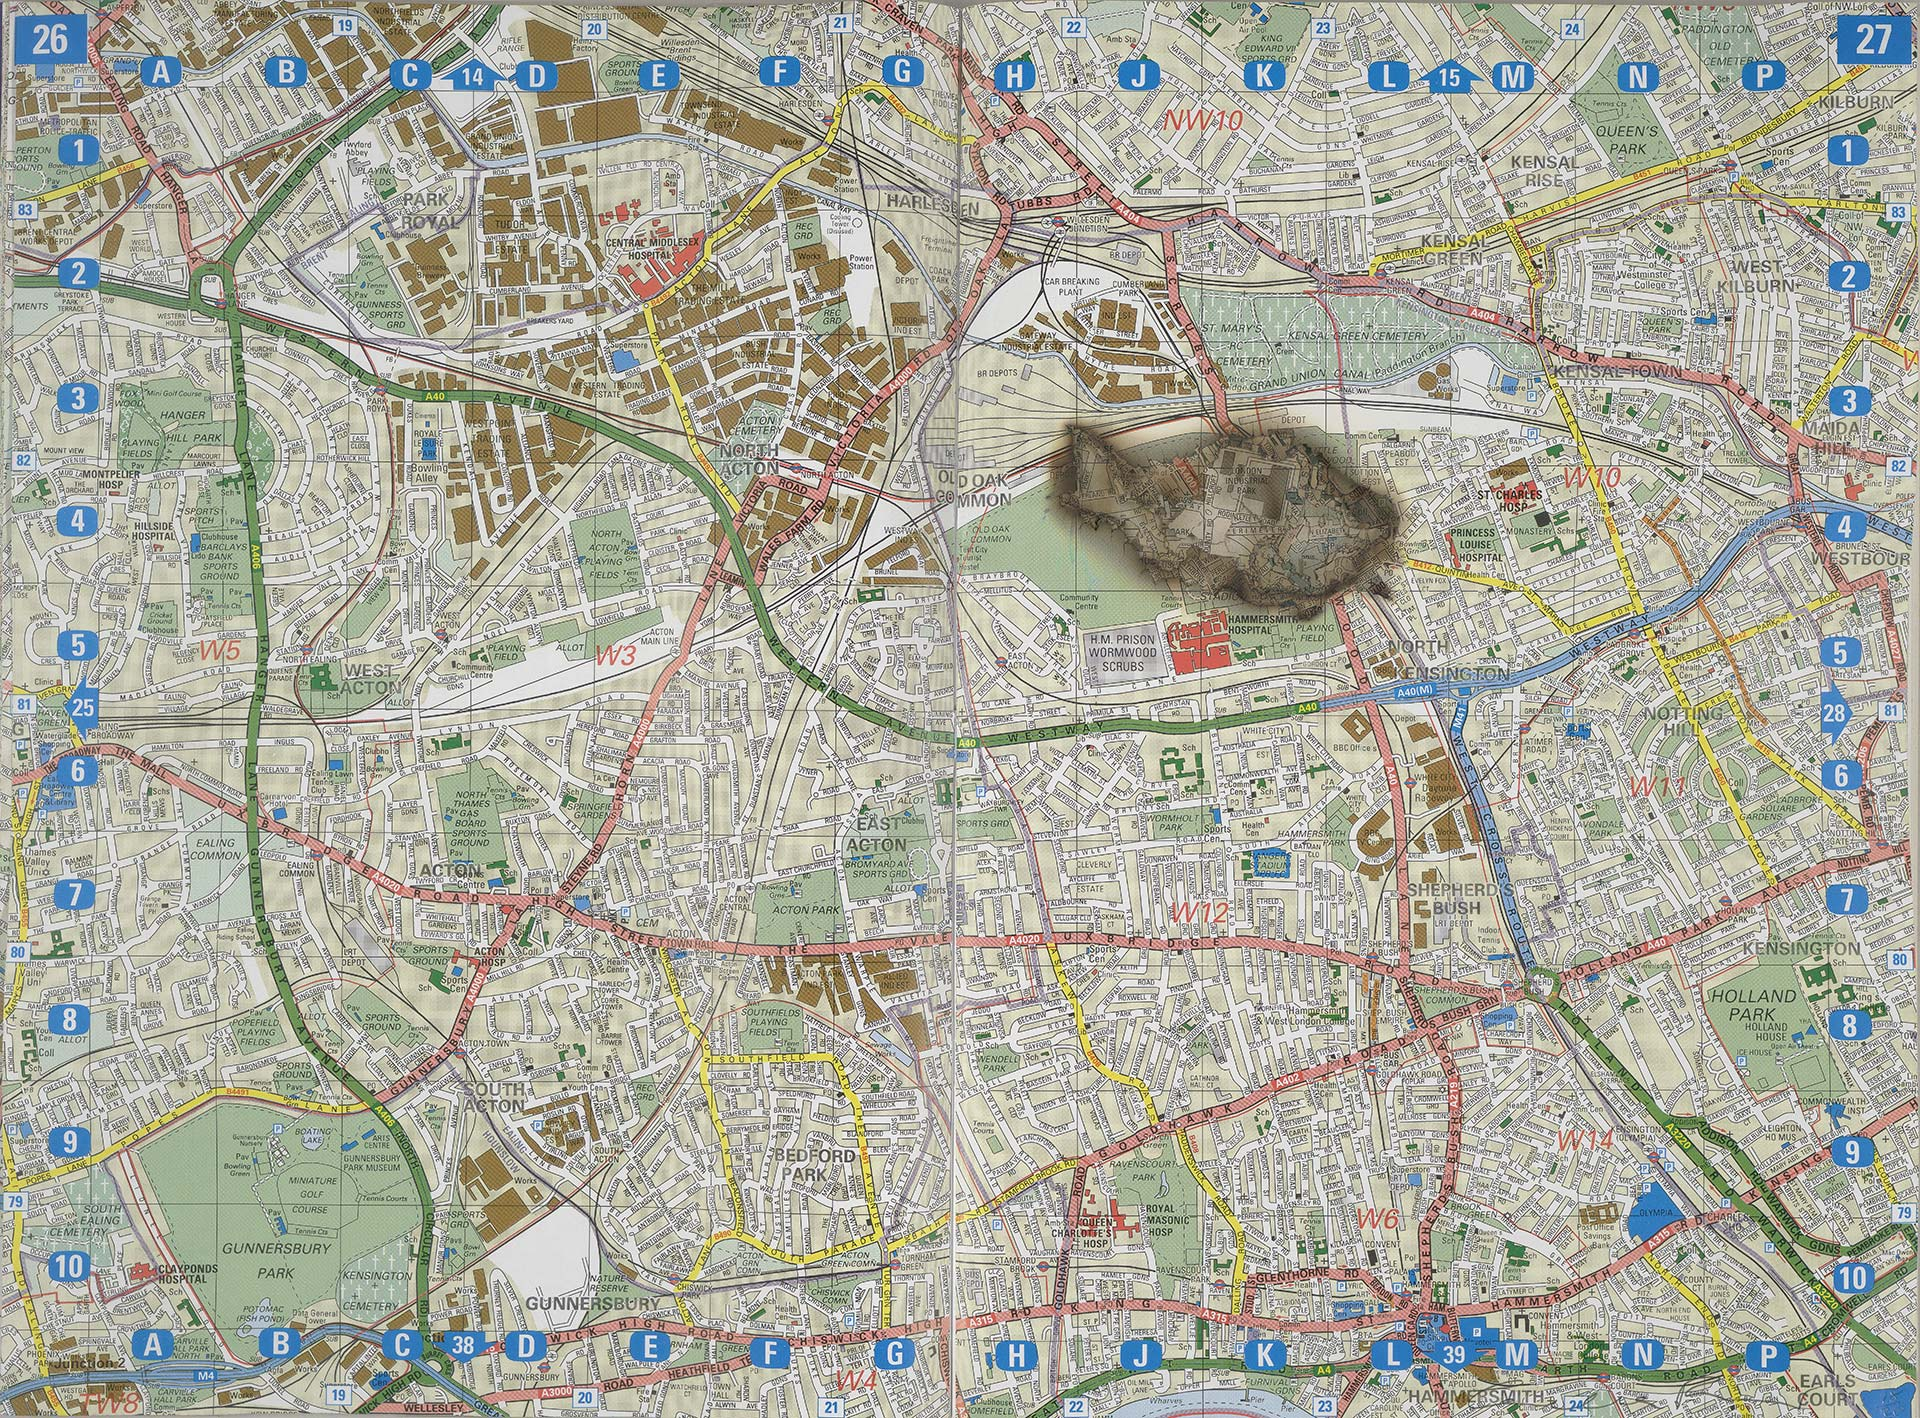 Cornelia Parker, Meteorite Lands on Wormwood Scrubs, 1998, maple boxed framed map of London revealing burn mark left by a meteorite on paper, Yale Center for British Art, Friends of British Art Fund, © Cornelia Parker, courtesy the artist and Frith Street Gallery, London